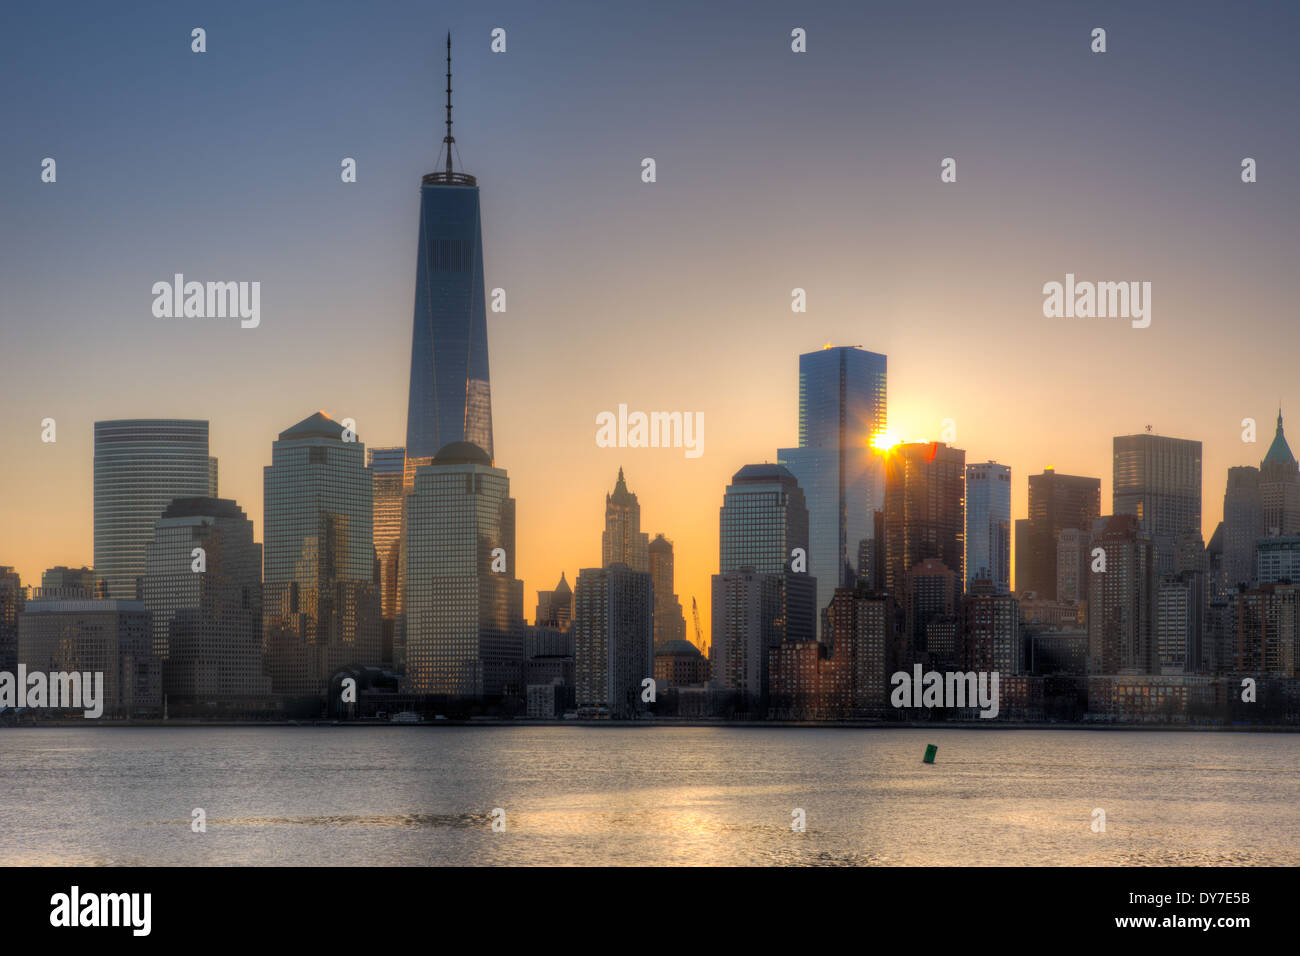 The sun rises next to 4 World Trade Center as the Freedom Tower (1 WTC) stands tall nearby in New York City. - Stock Image